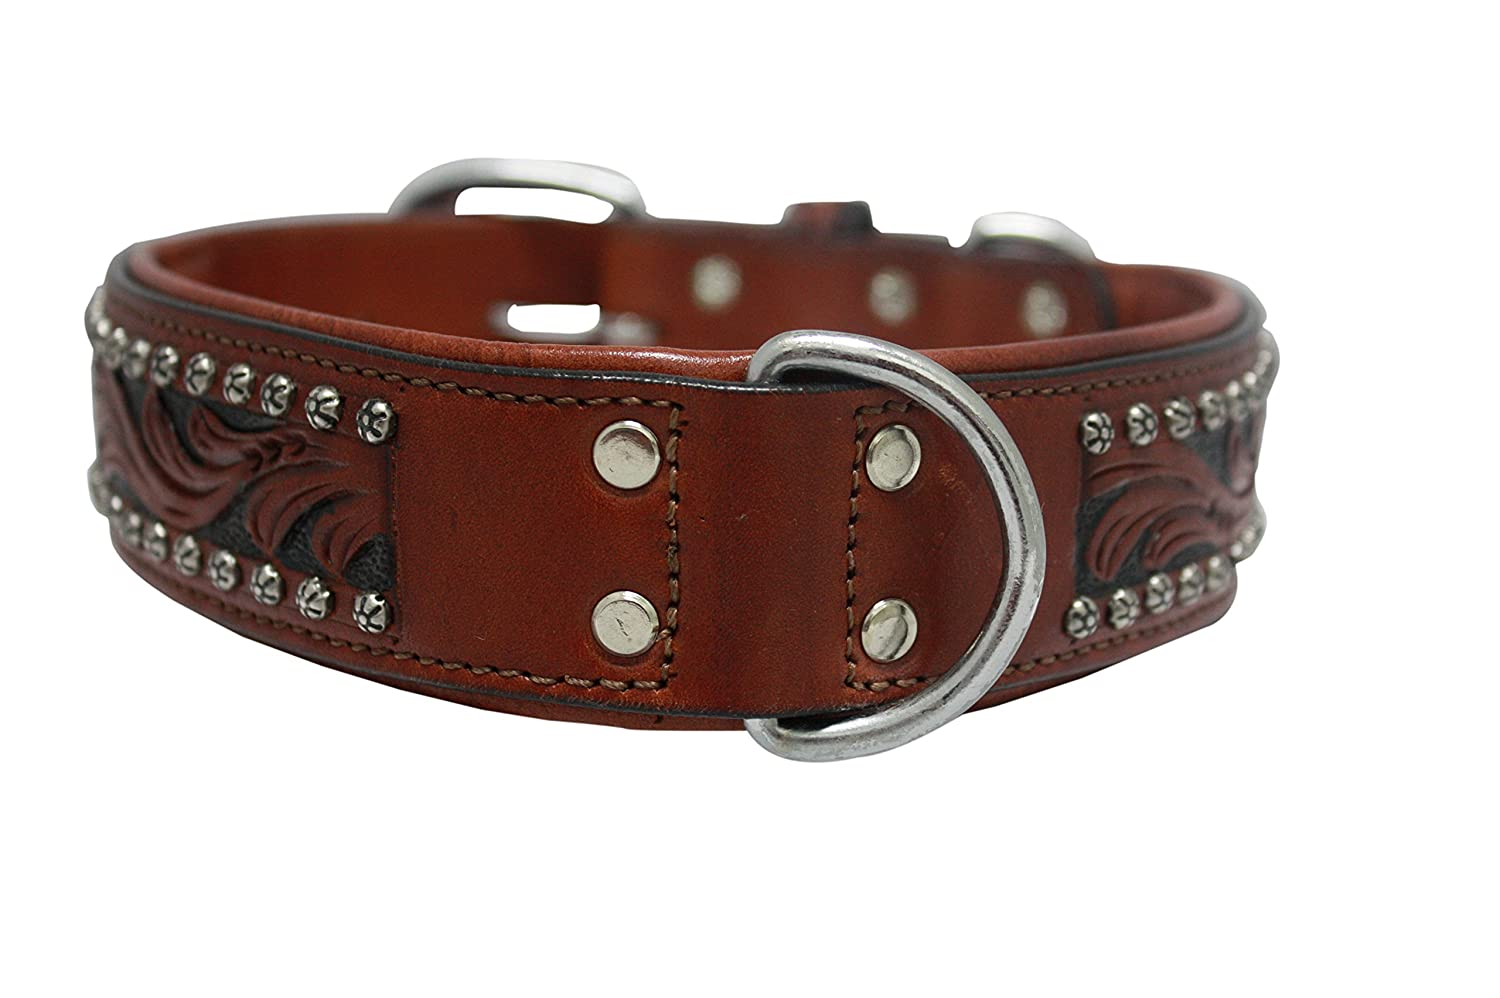 Leather Dog Collar. 22  x 1.5 , Western Tooled in Brown Black Inlay, Hand-Carved, silverinean Cowhide. Stainless Steel. (MESA) Necks 16.5 -20